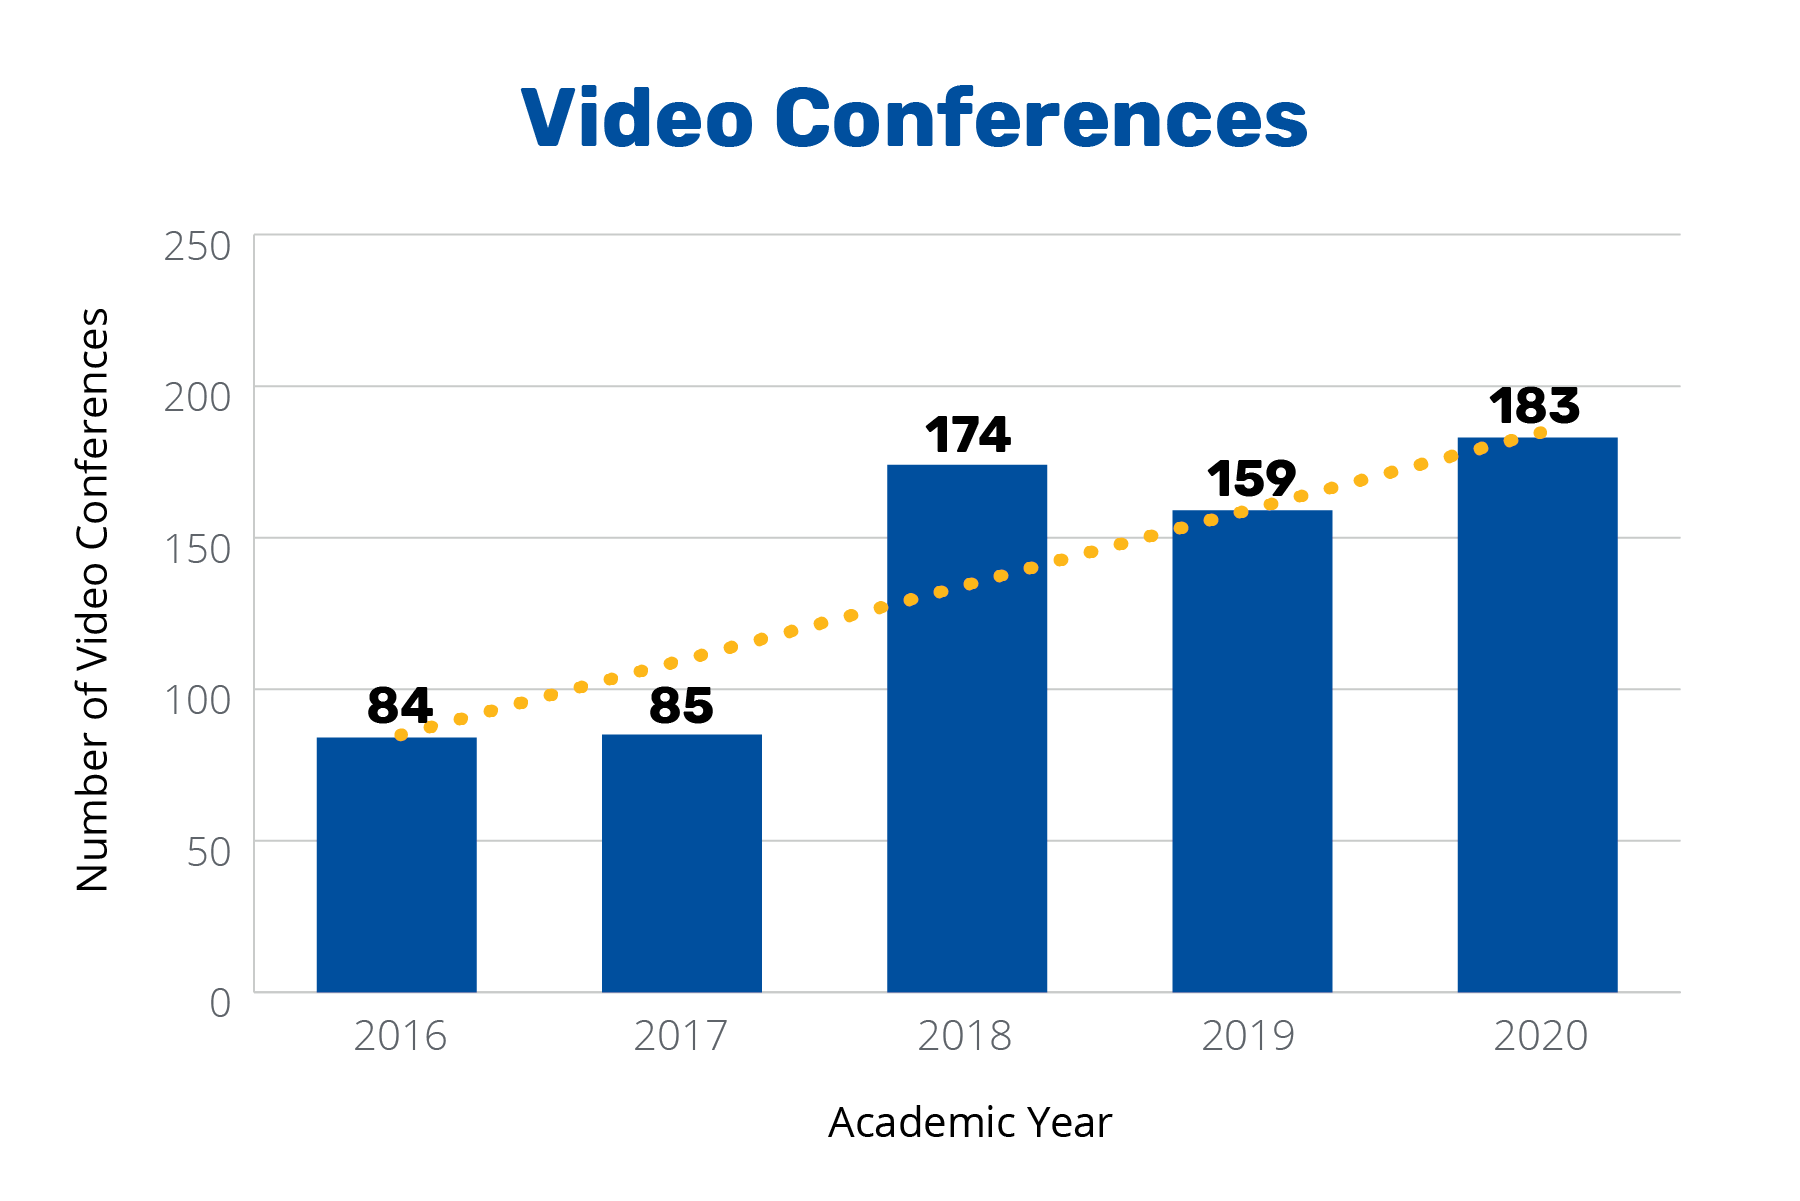 Annual Report 2020 - Video Conferences